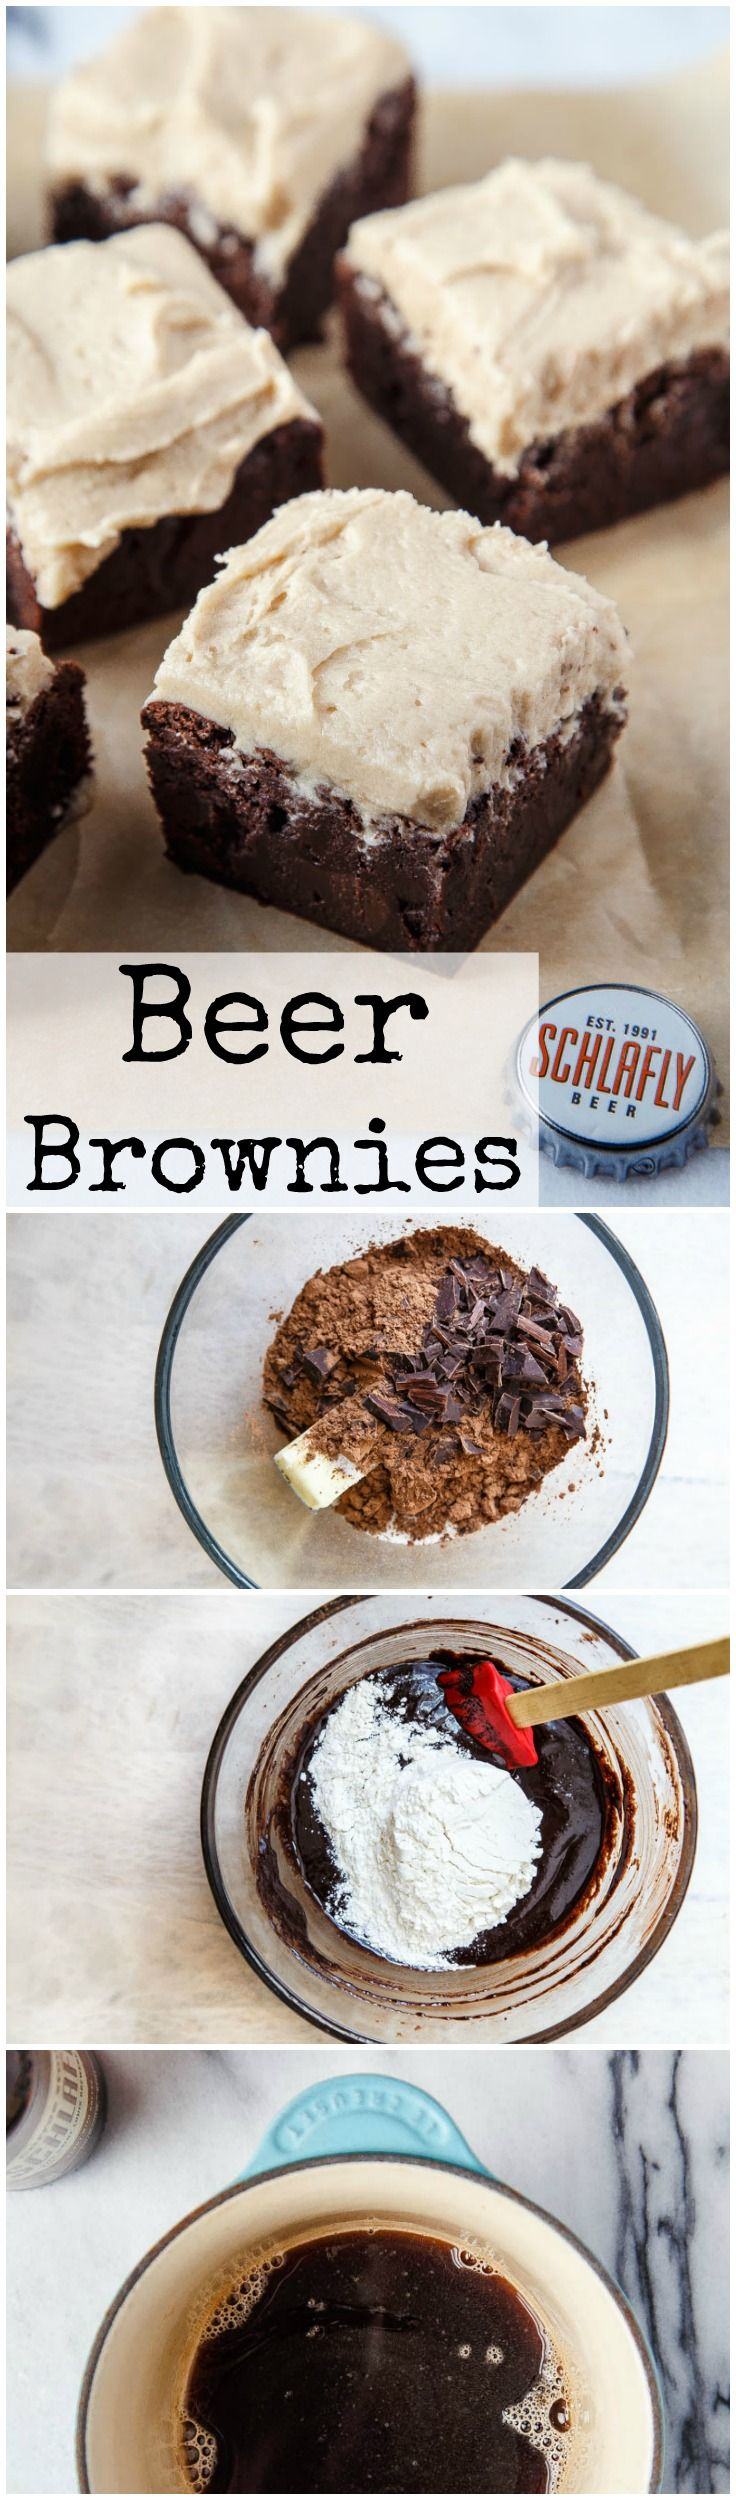 Your man wants beer brownies for Valentine's Day dessert for two. Awesome made with coffee or oatmeal stout. Brownies for two! @dessertfortwo